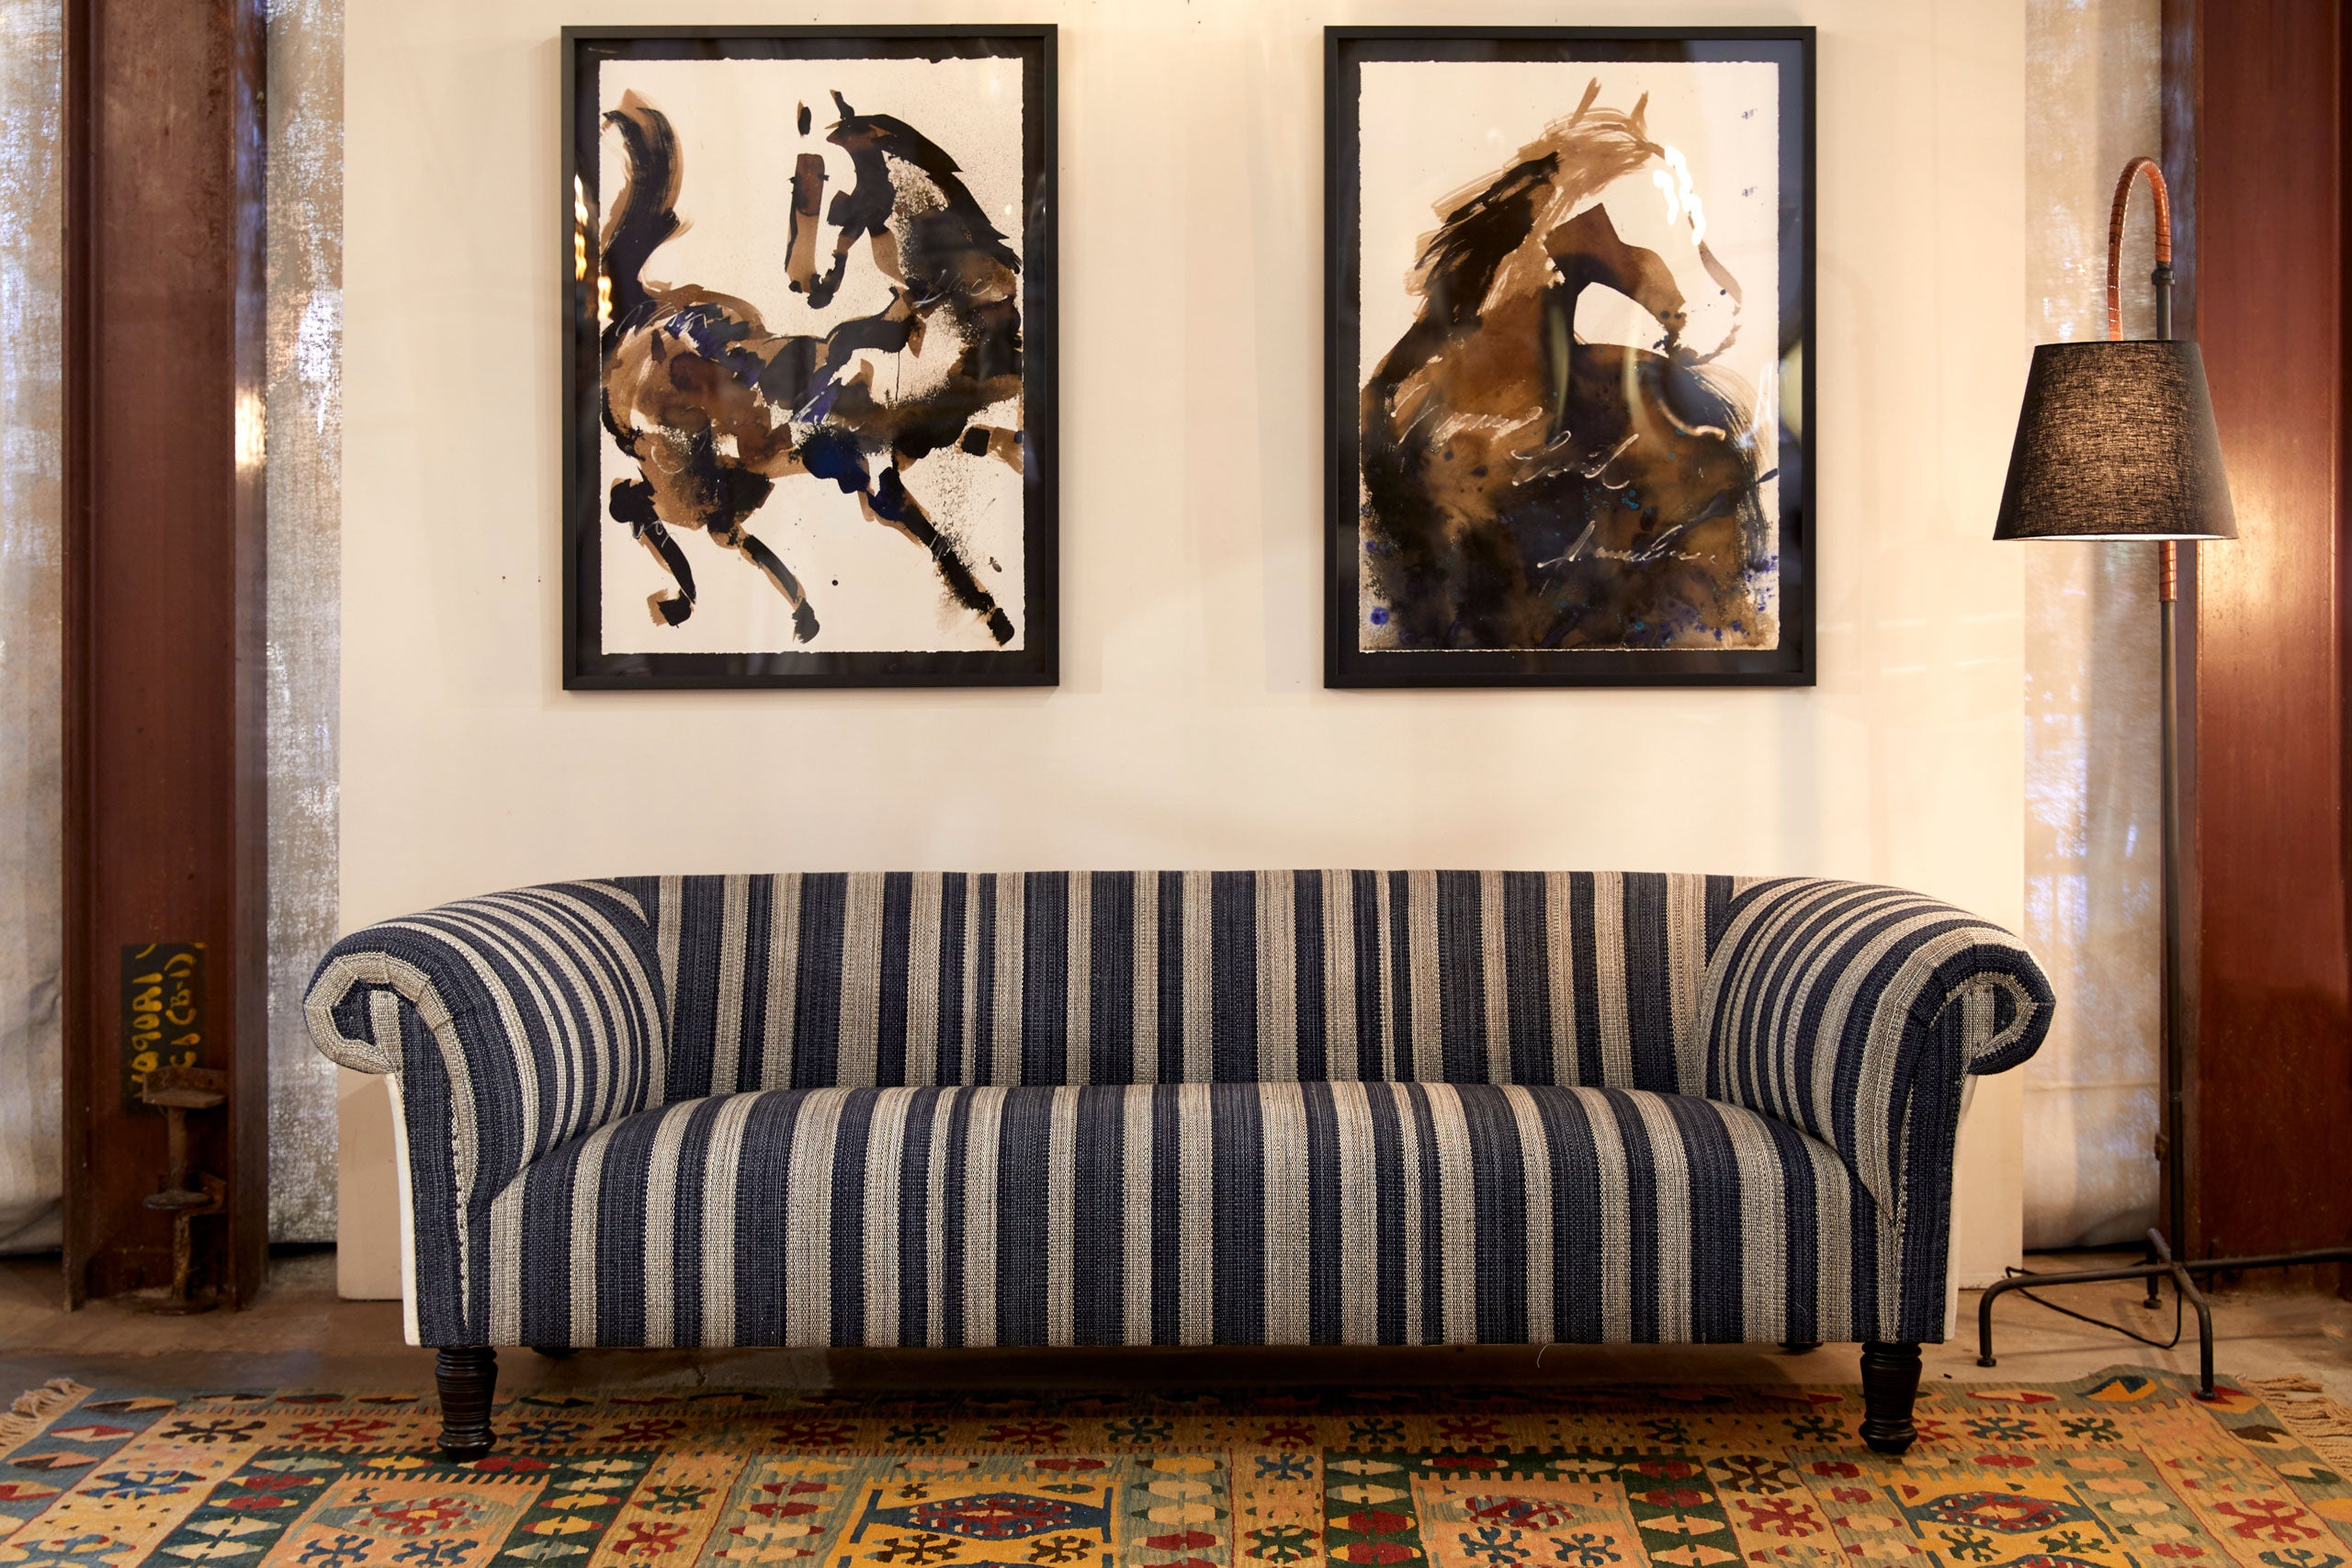 sofa in striped fabric with two painting on the wall behind the sofa